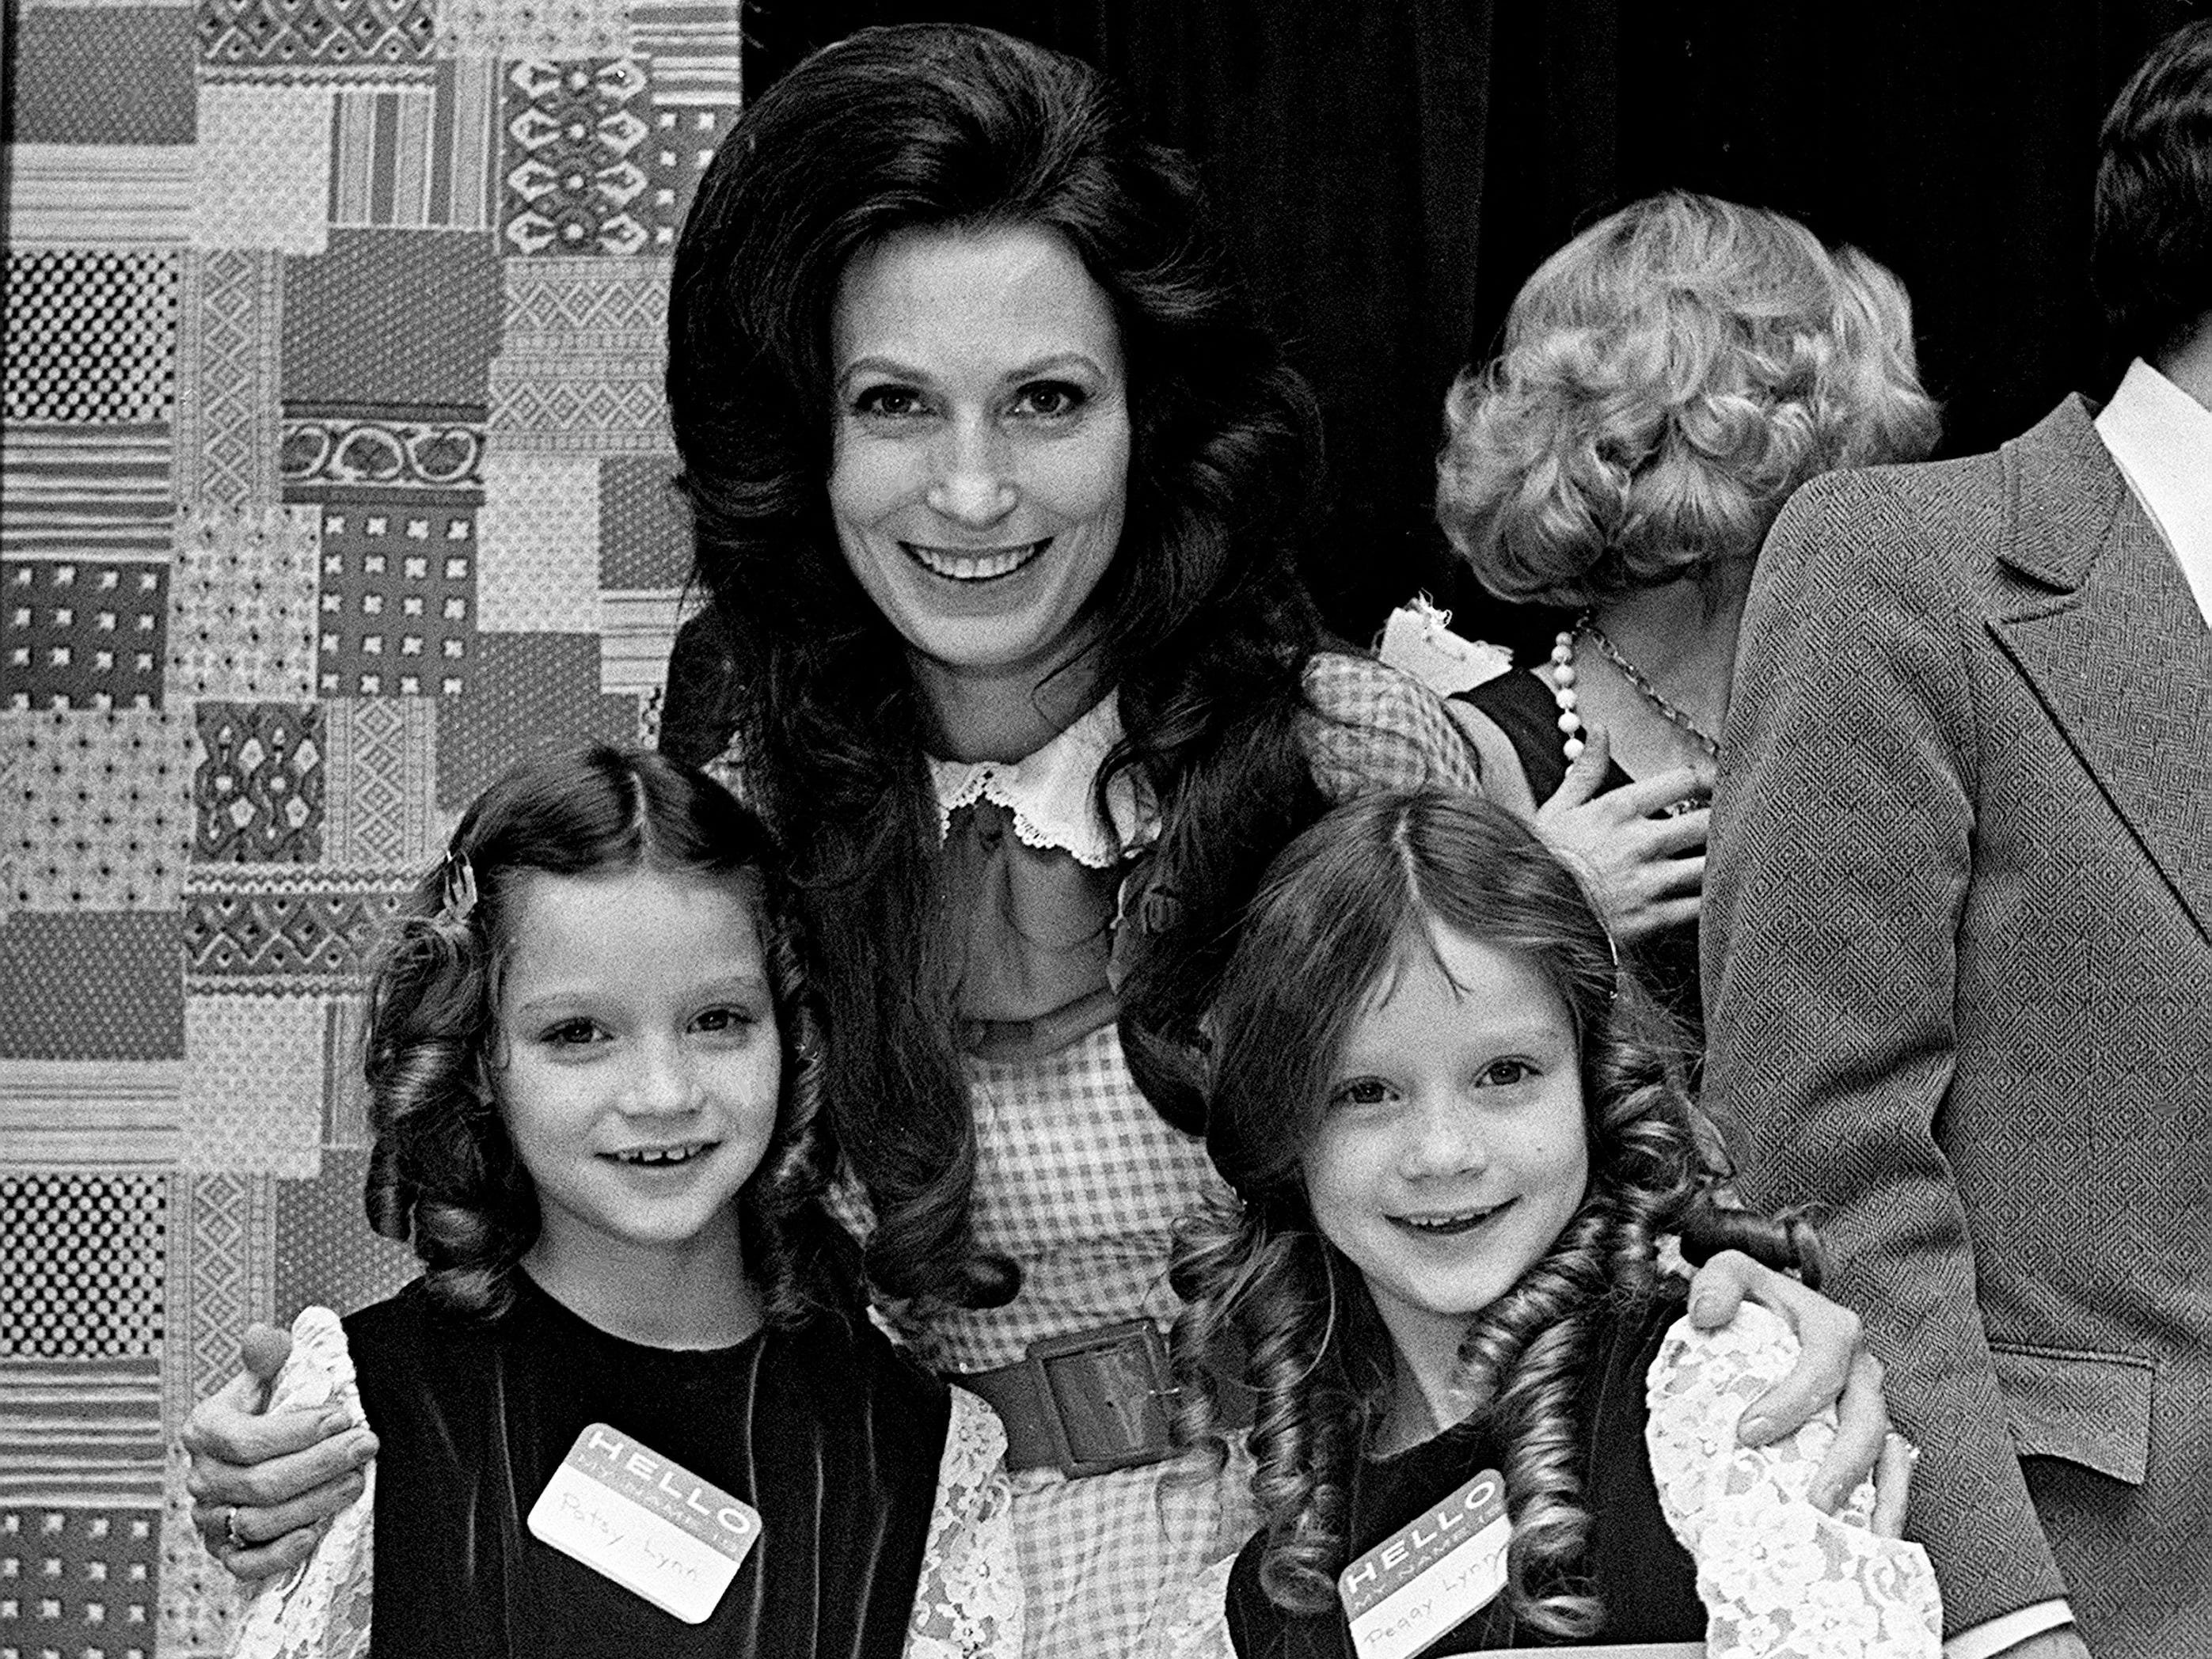 Loretta Lynn, center, one of the Women of the Year for 1972, is with her twins daughters, Patsy, left, and Peggy, at the banquet honoring the Women of the Year at the Woodmont Country Club on Feb. 13, 1973.